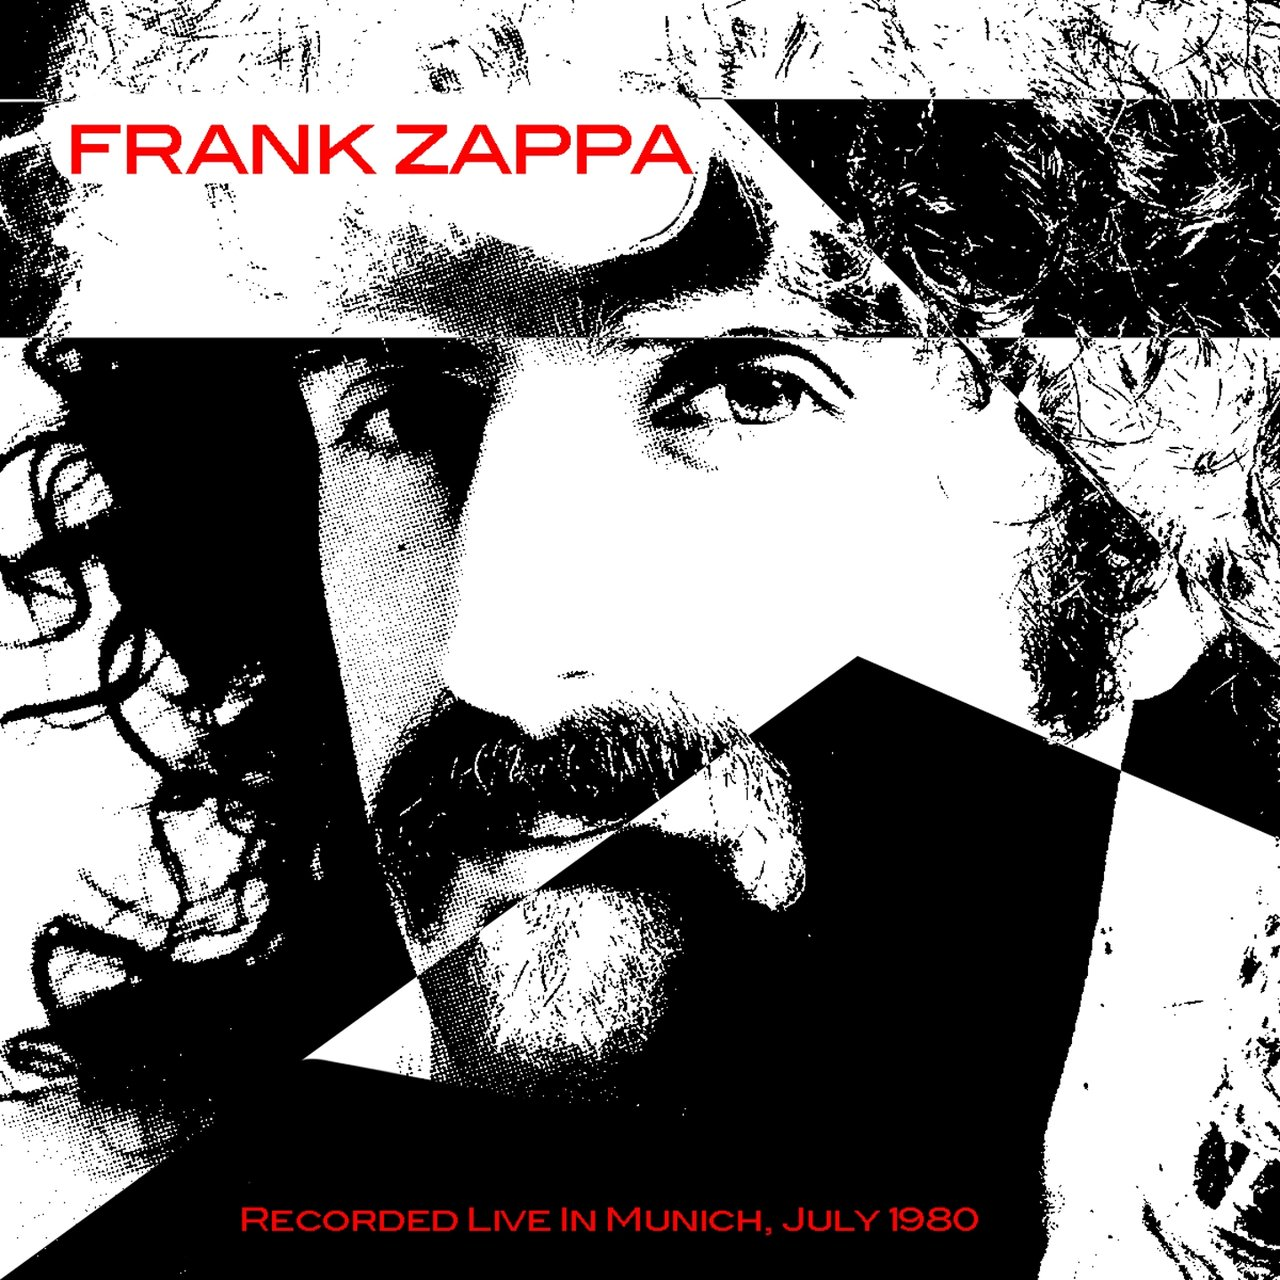 Frank Zappa: Recorded Live In Munich, July 1980